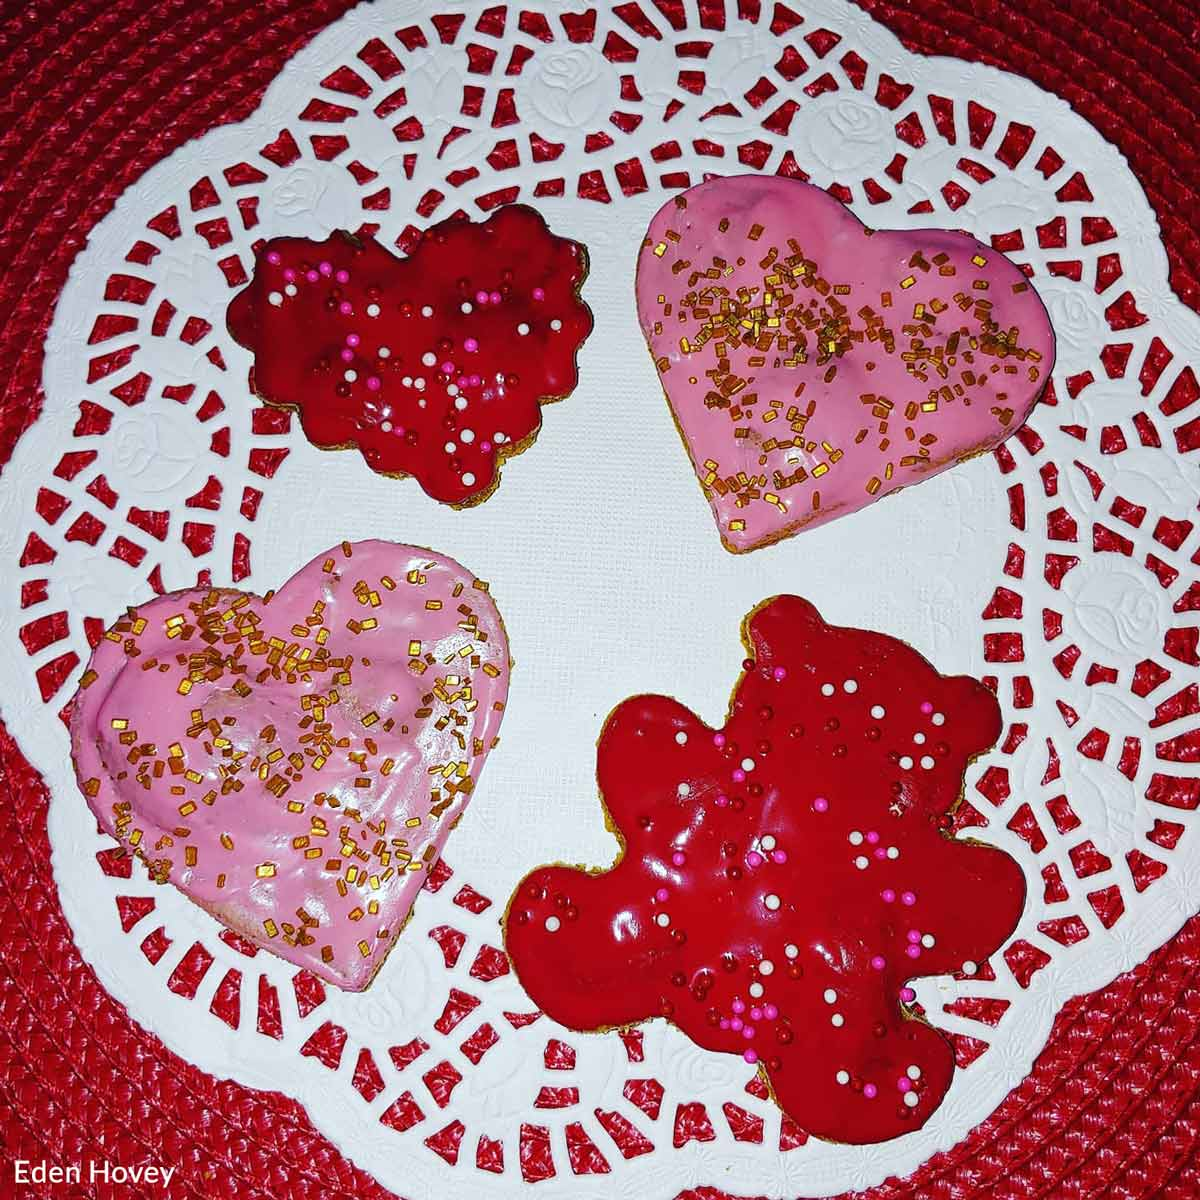 Some sweet canine Valentines from Logan's Dog House.